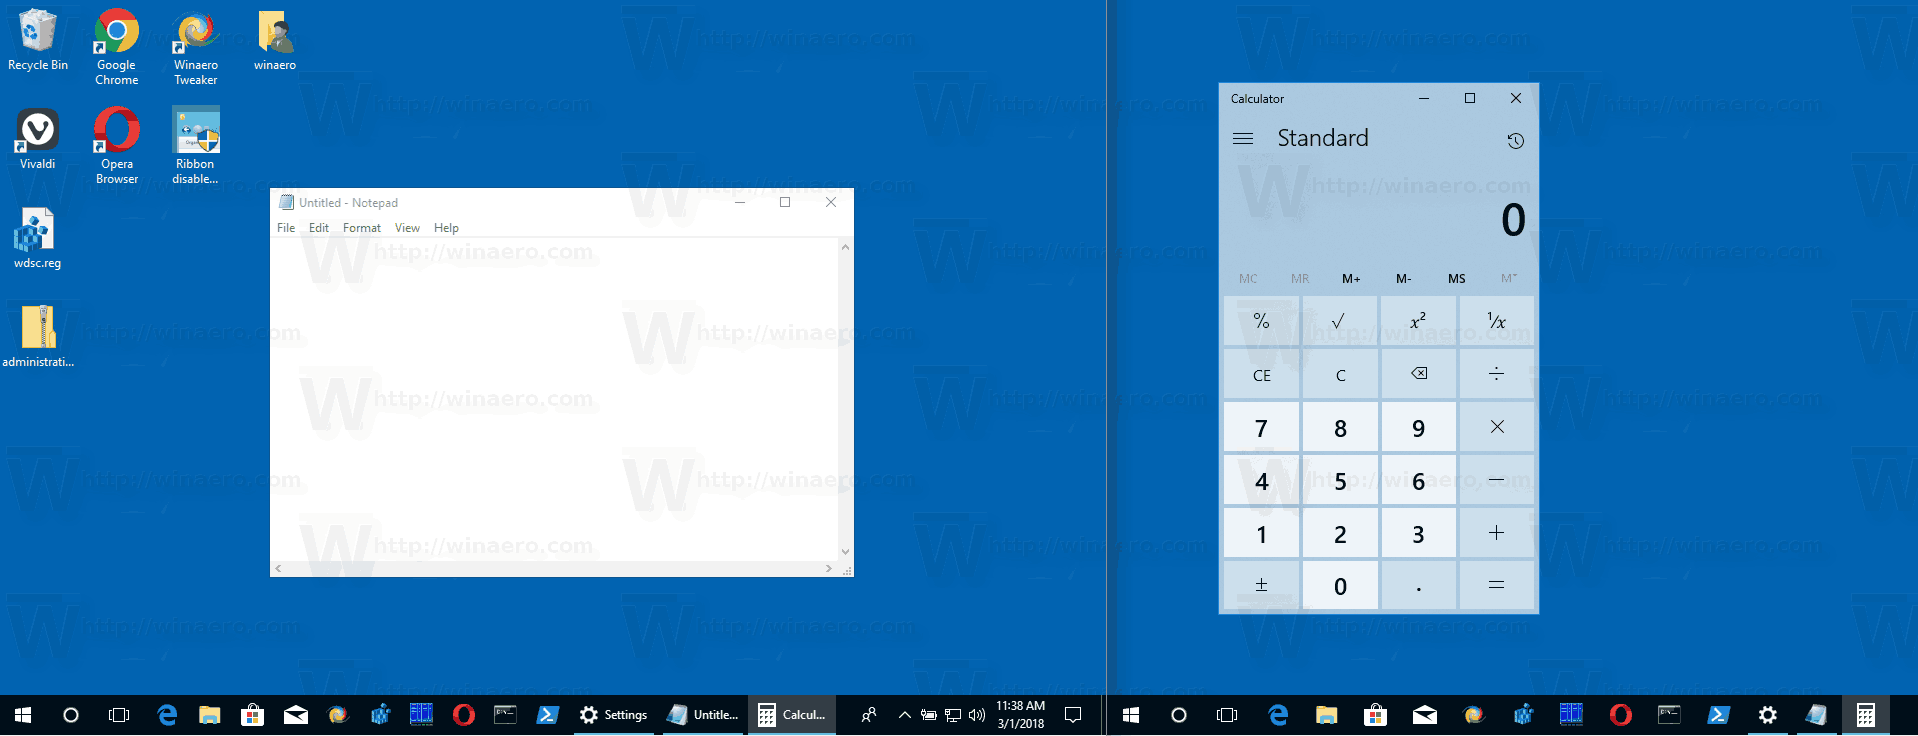 Taskbar On Multiple Displays In Windows 10